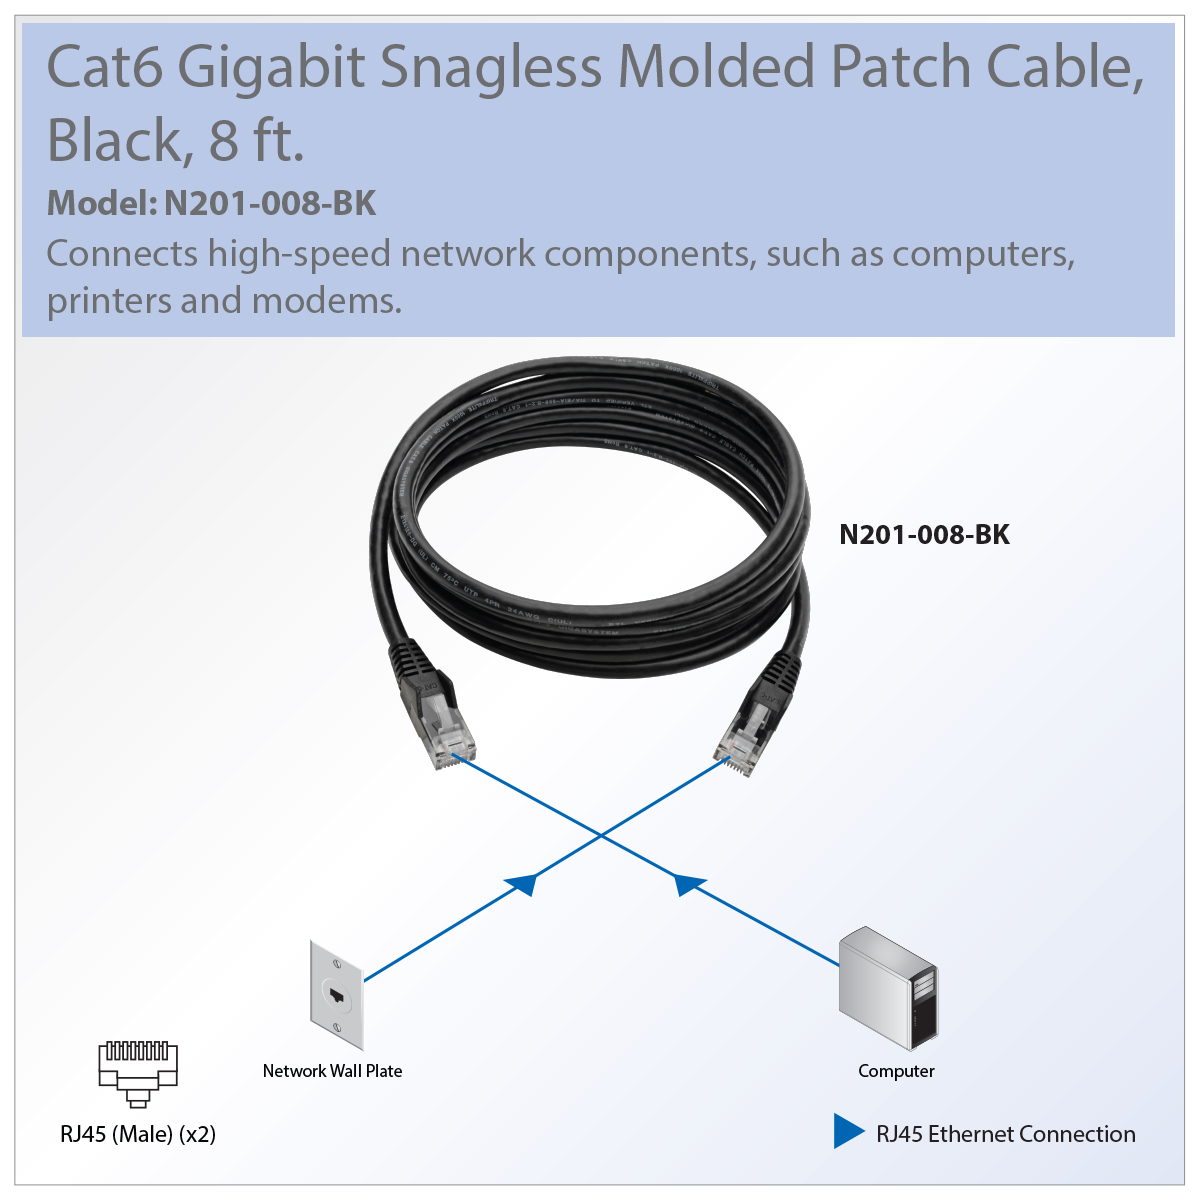 recommended patch cable for connecting components in your cat6 gigabit  ethernet network